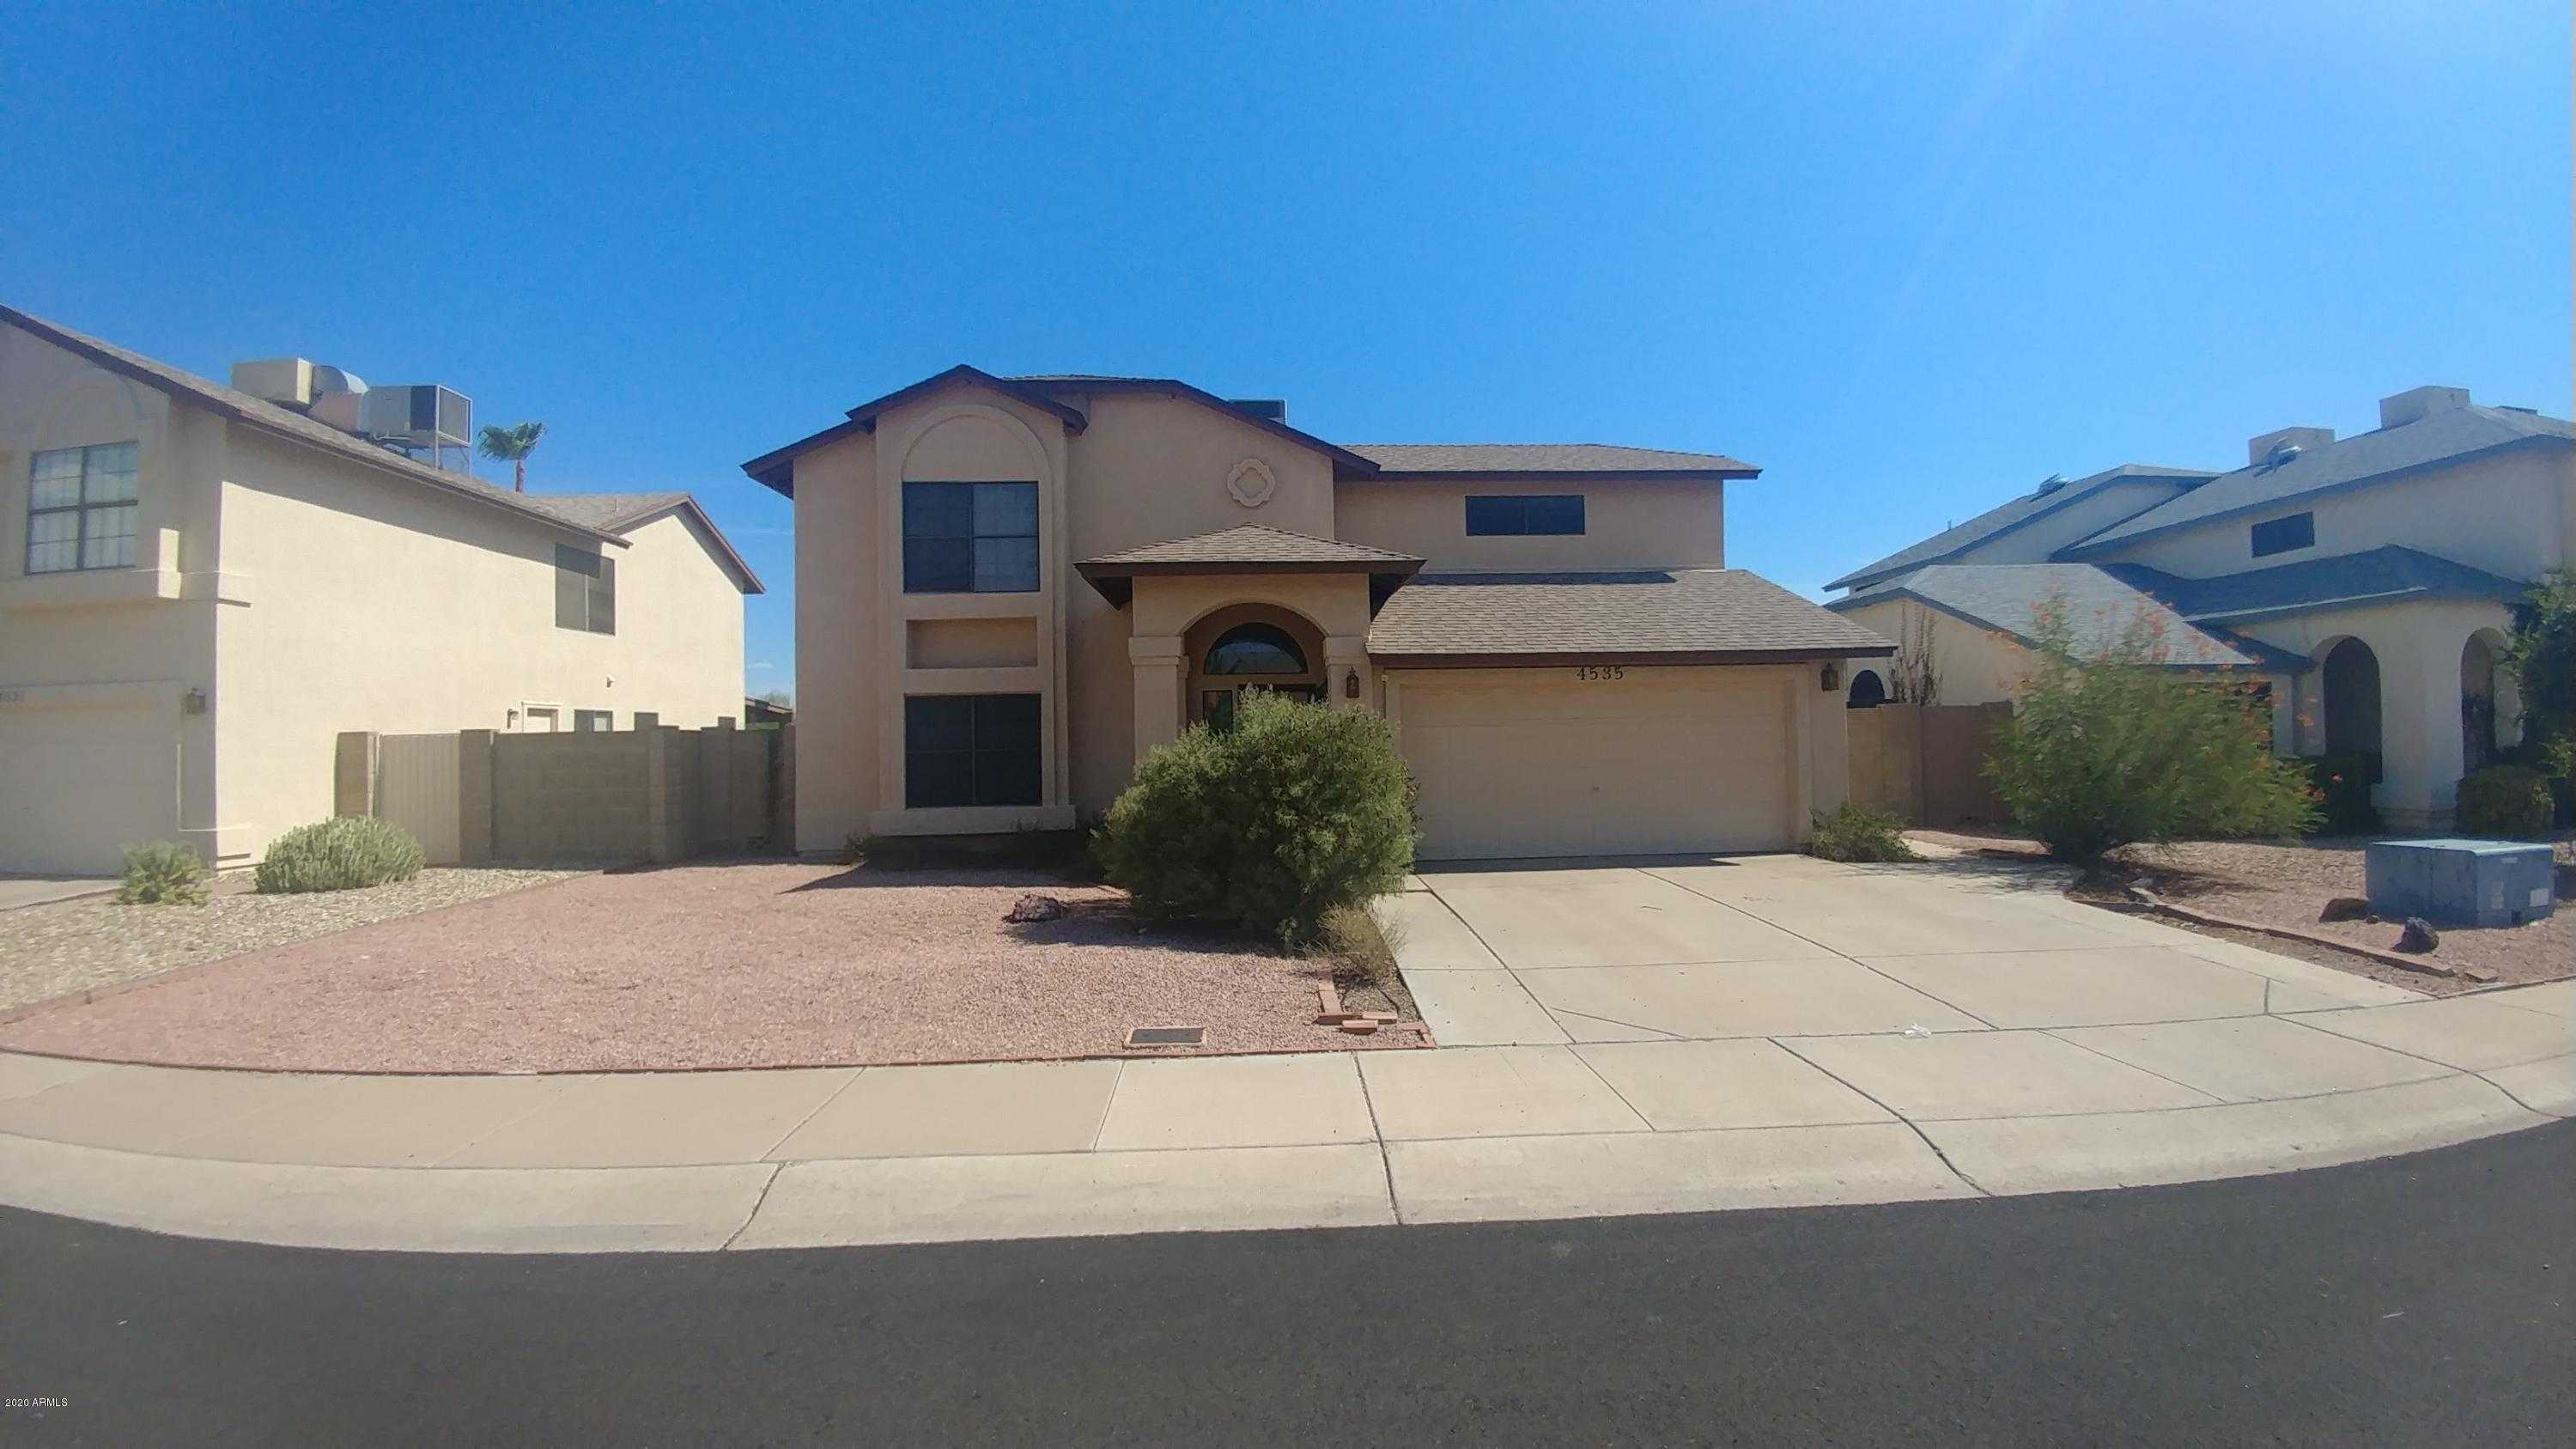 $274,900 - 4Br/3Ba - Home for Sale in Overland Trail 6 Lt 1-229 Tr A-k, Glendale